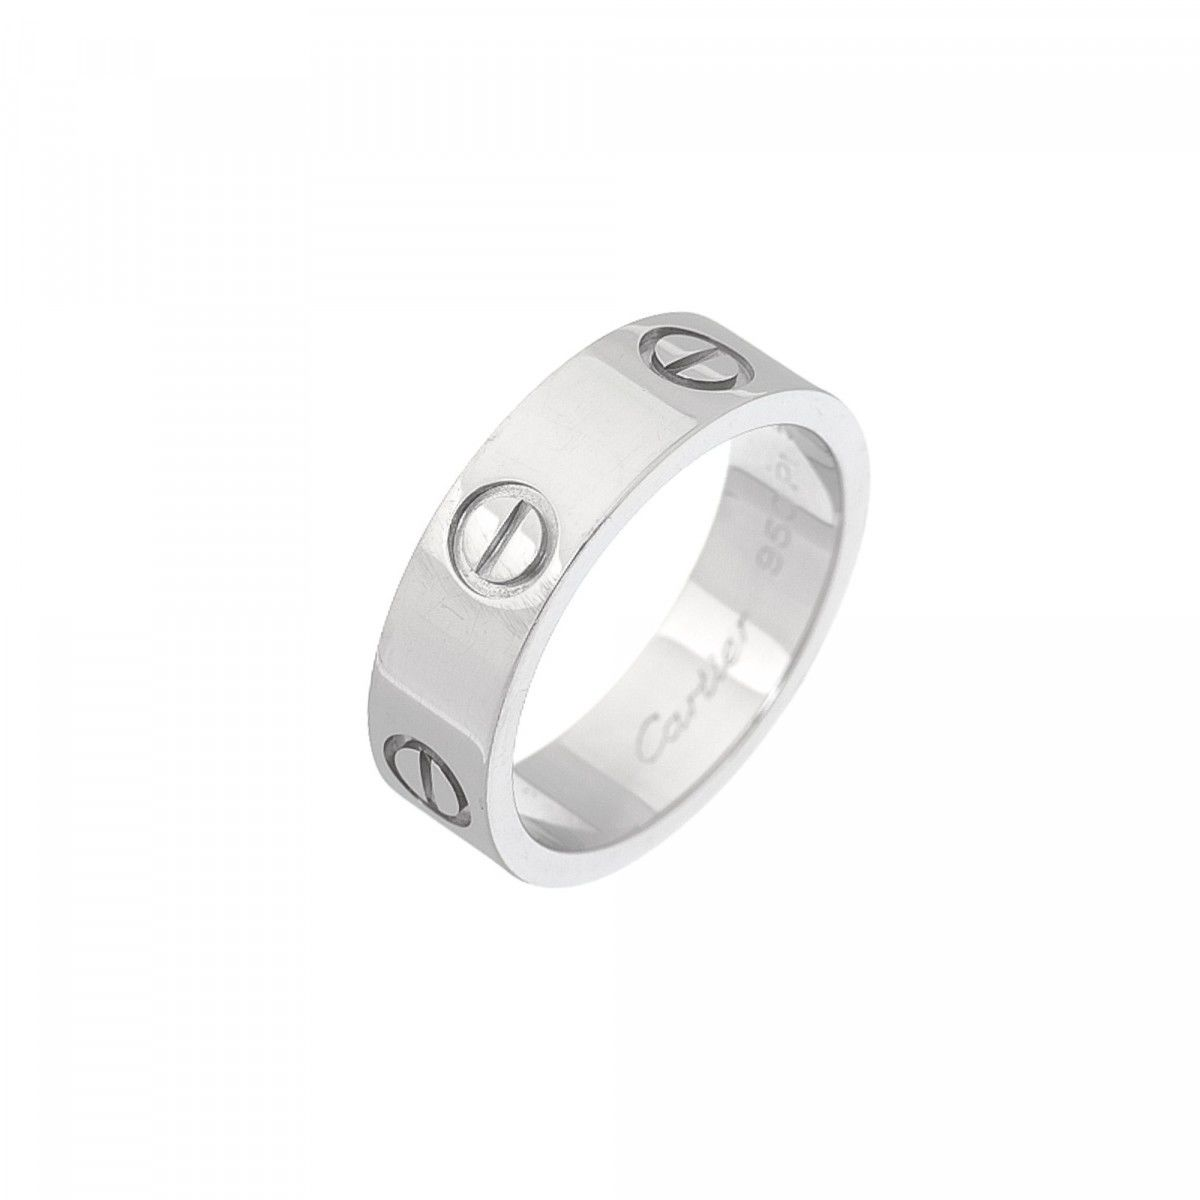 original wedding love you i rings engag couple collections ring products infinity